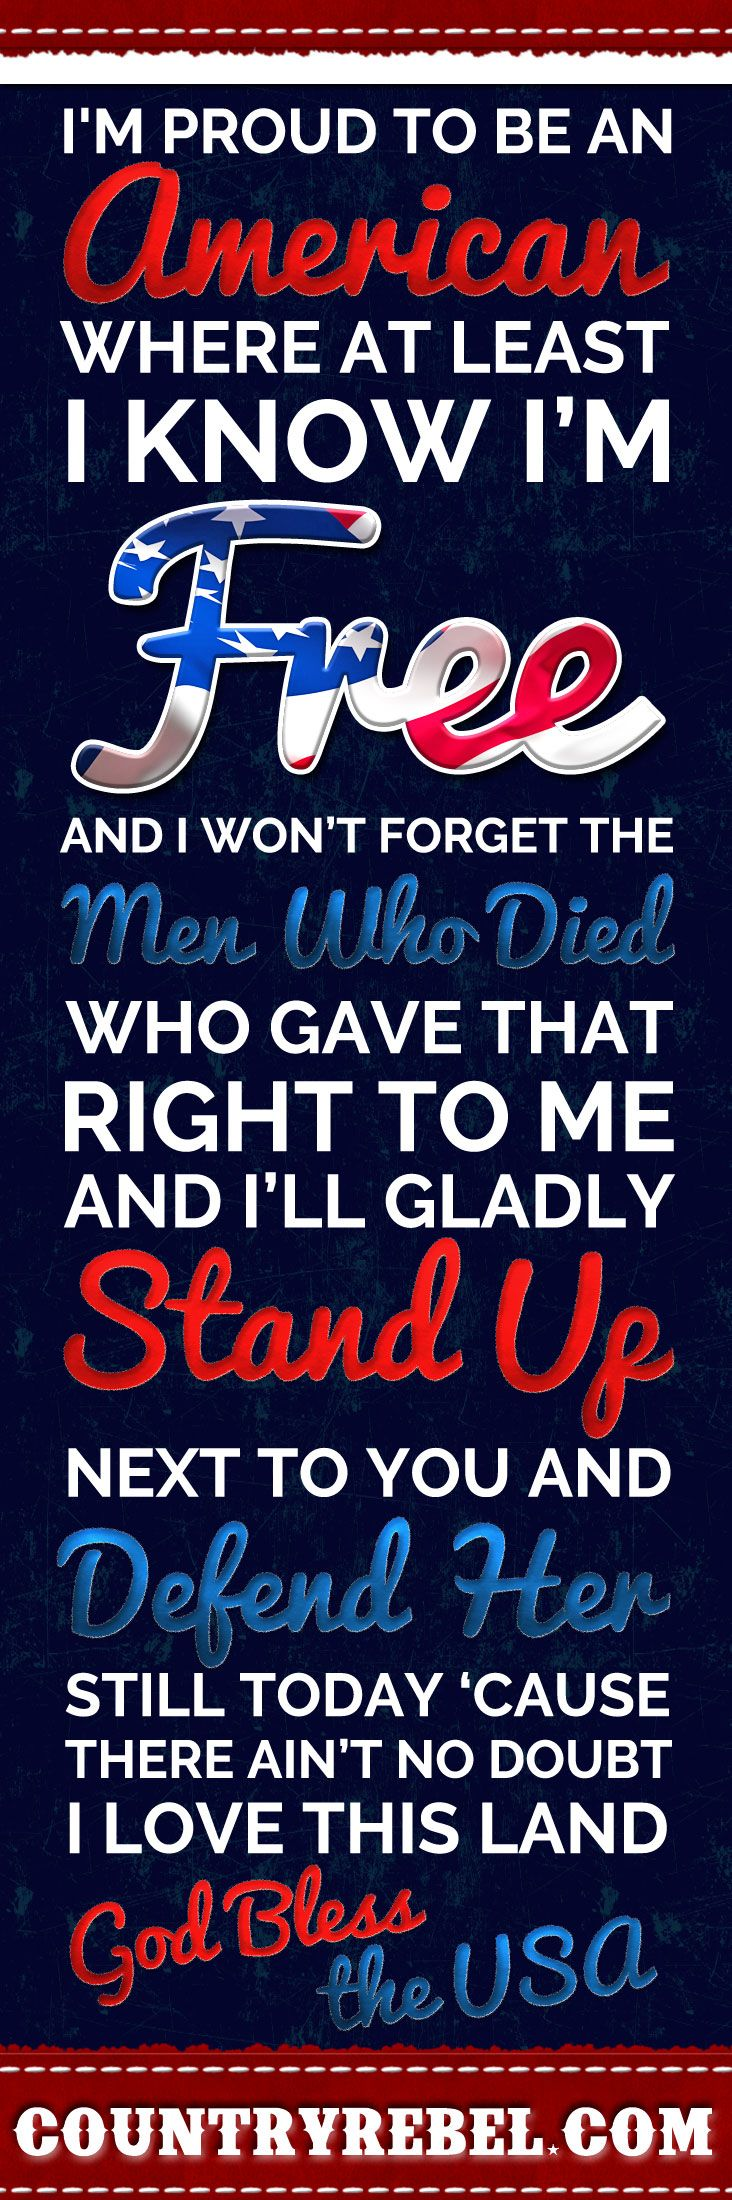 Country Music Quotes - Lyrics | Lee Greenwood God Bless The USA